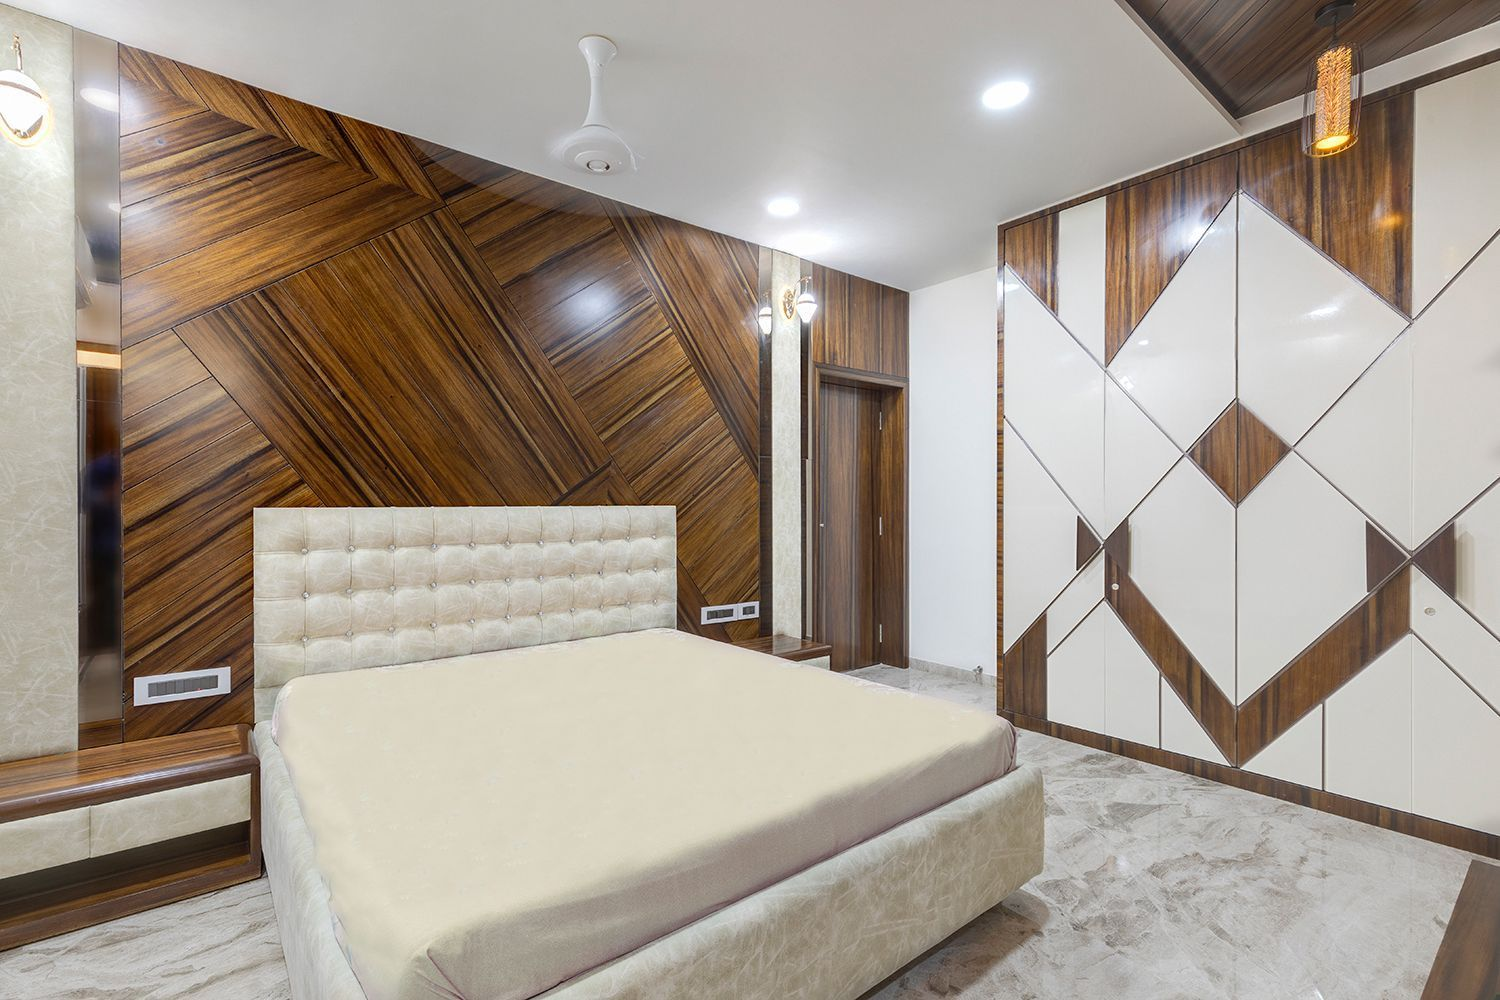 Wooden Theme in 🛏 Bedroom designed with Wooden 🛏 Bed ...